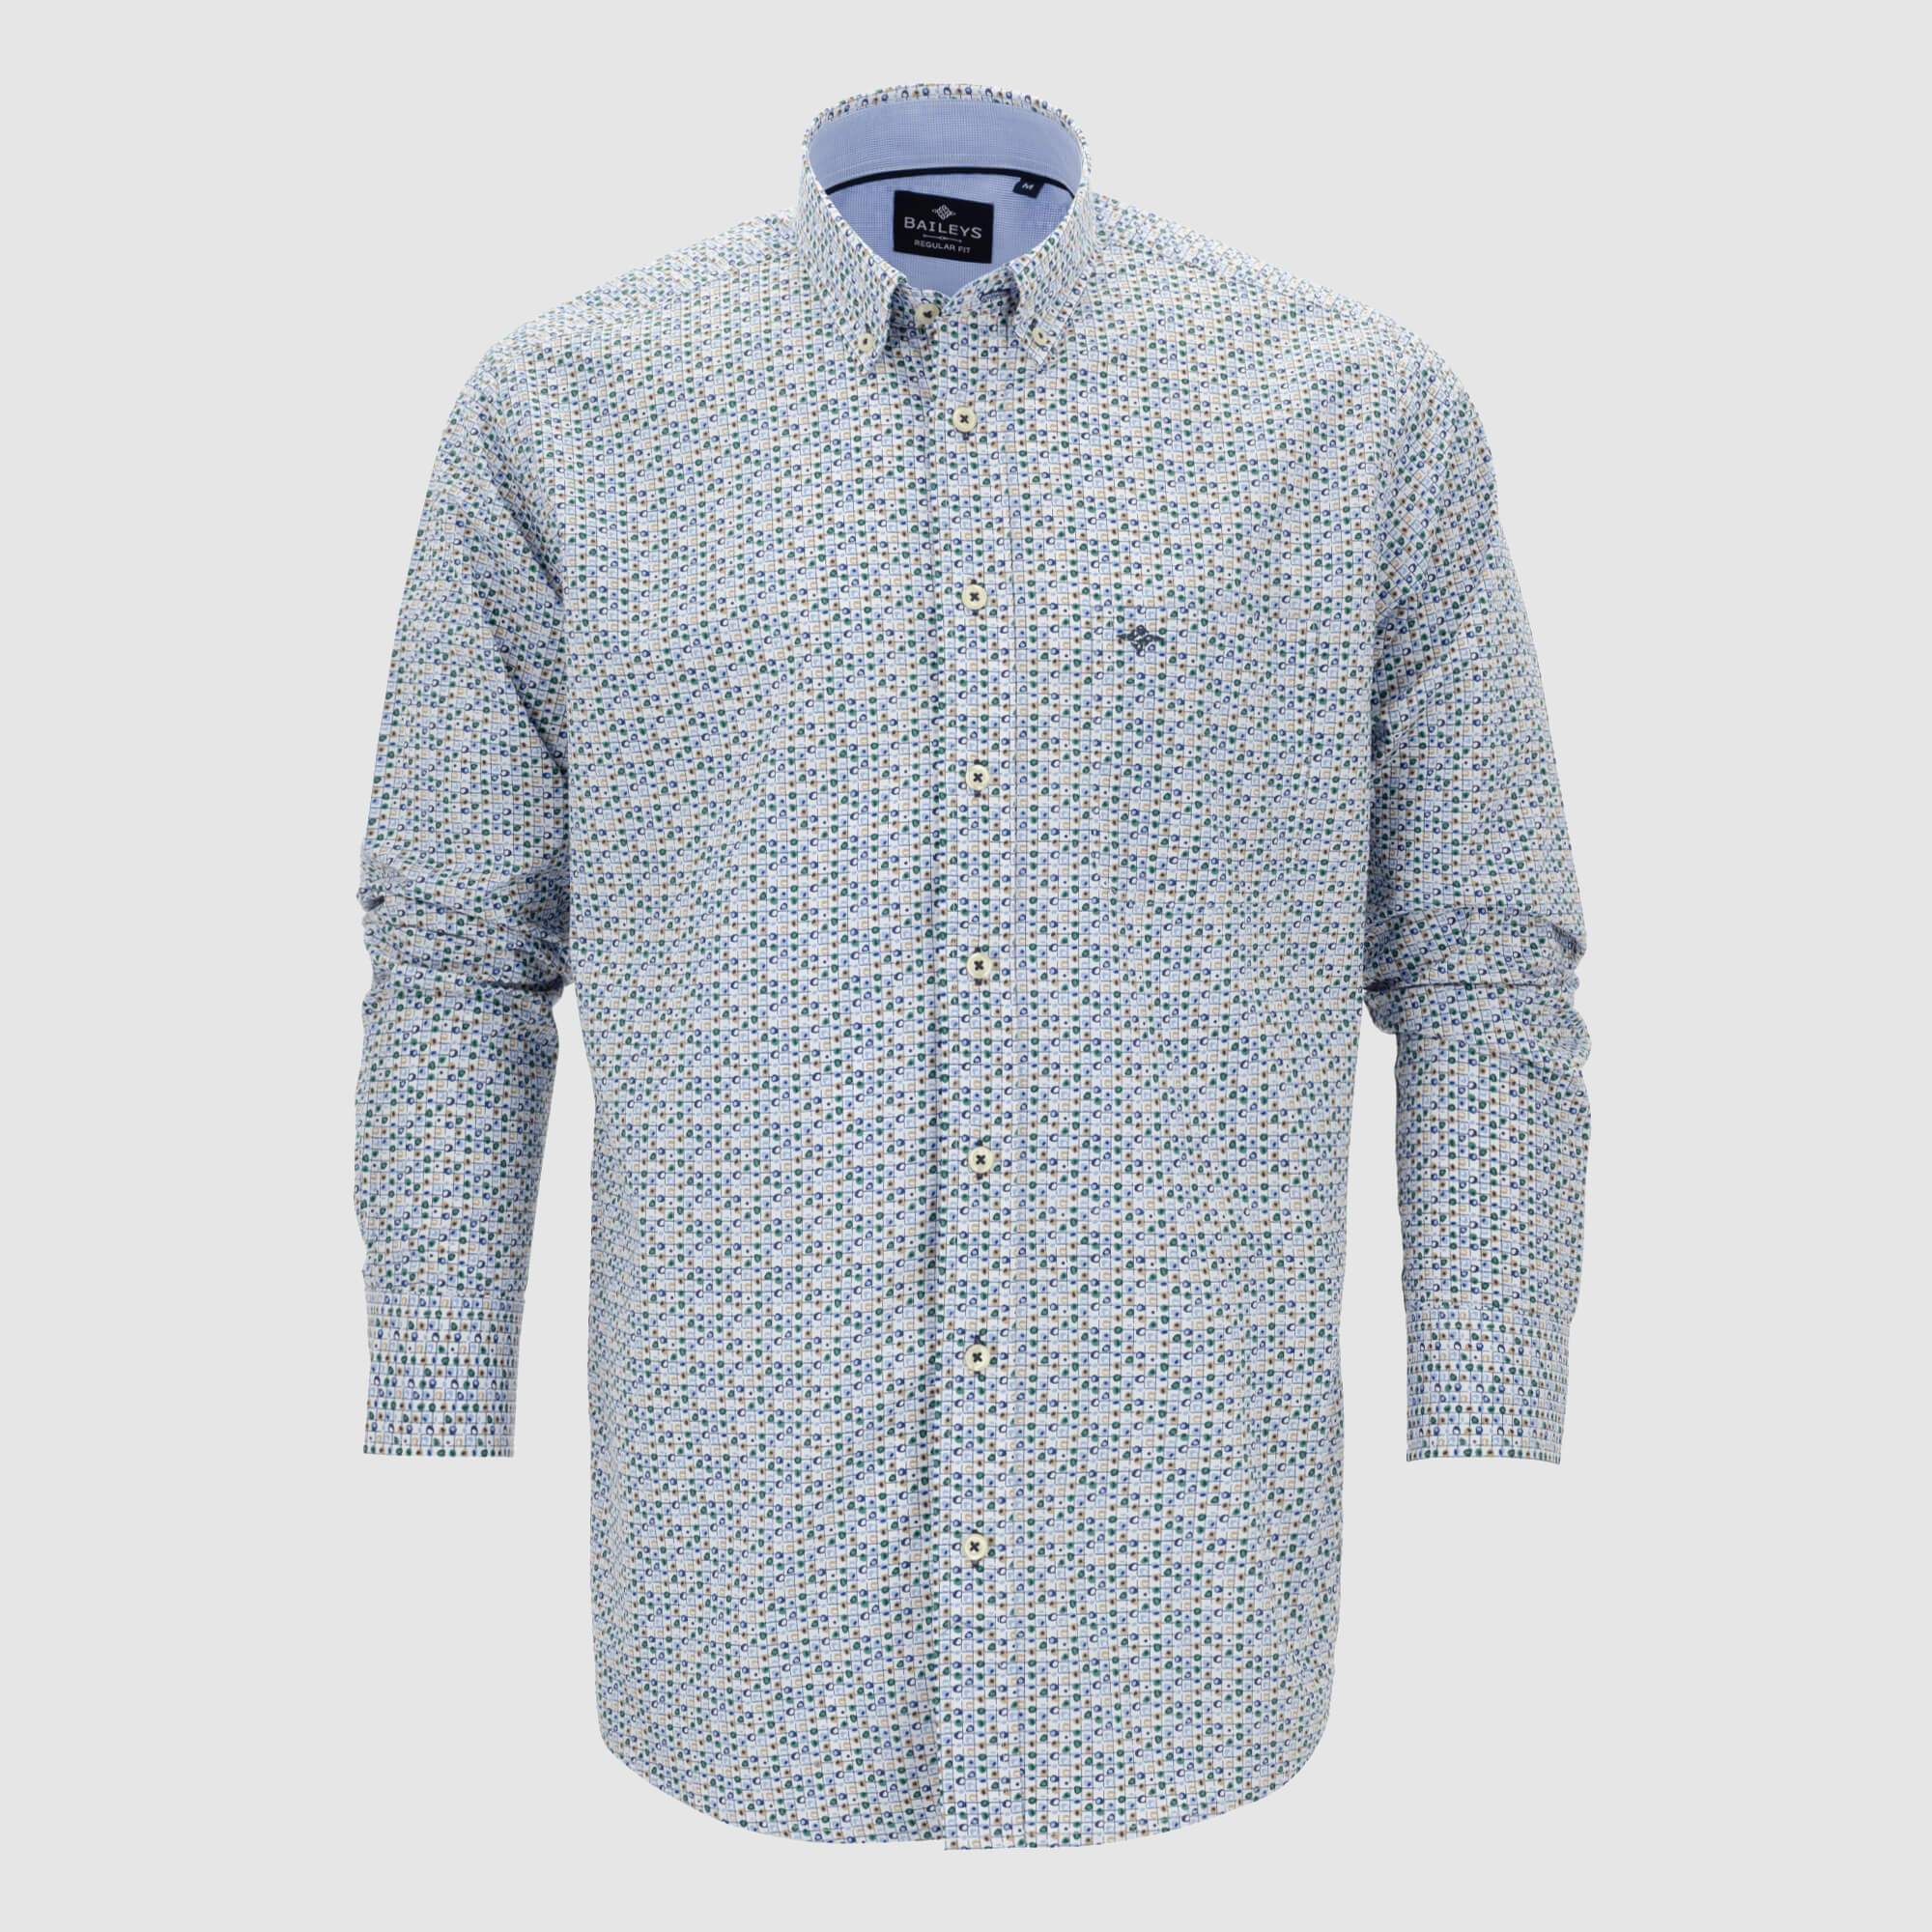 Camisa estampada regular fit 107693